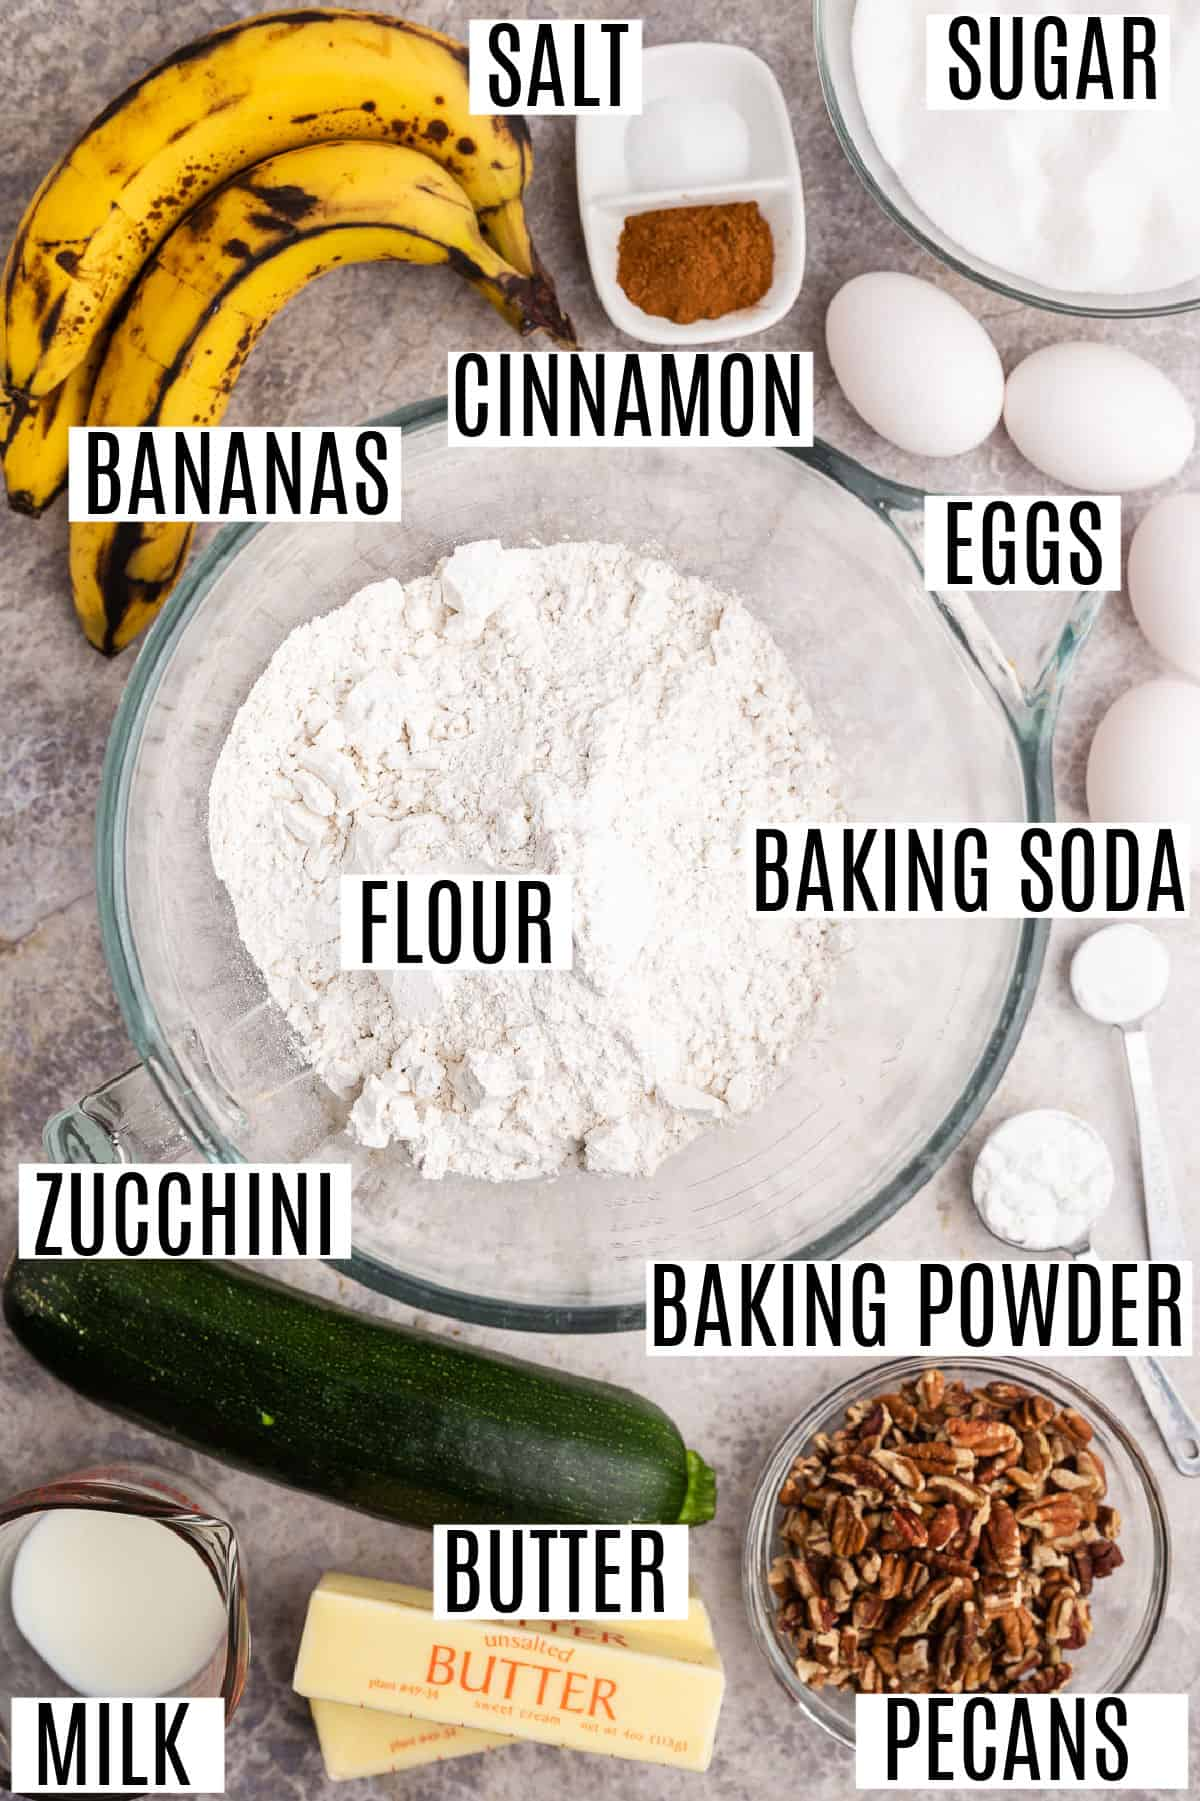 Ingredients needed for zucchini banana bread.